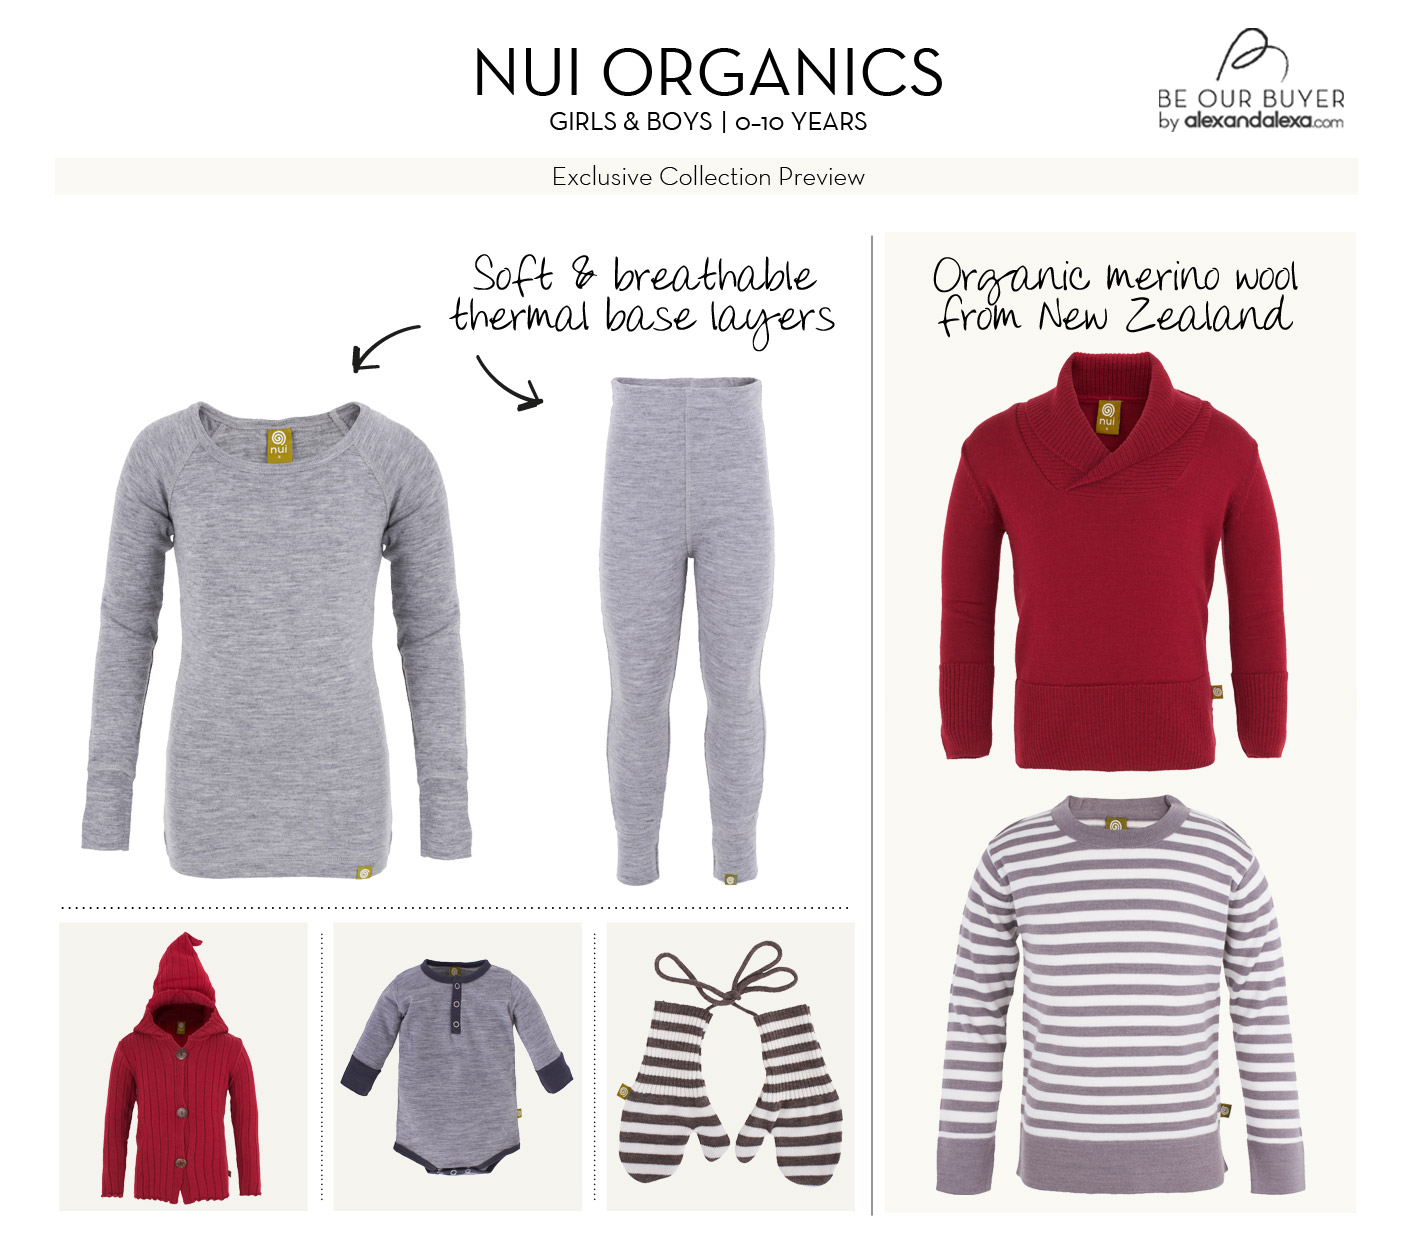 BE OUR BUYER: Nui Organics, 100% Merino wool clothing for ...